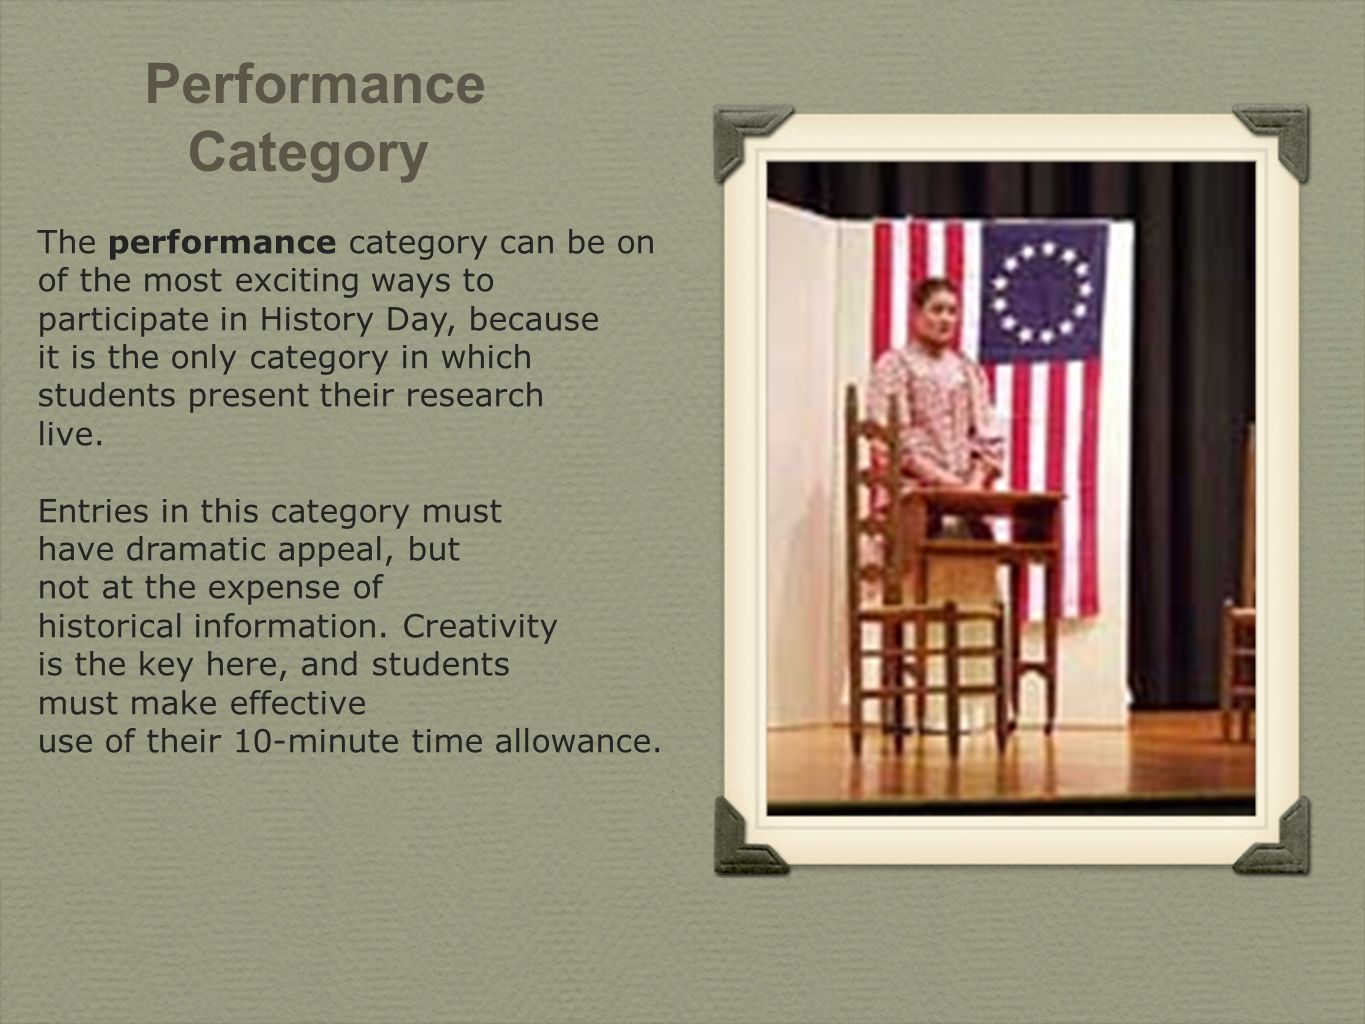 The performance category can be on of the most exciting ways to participate in History Day, because it is the only category in which students present their research live.